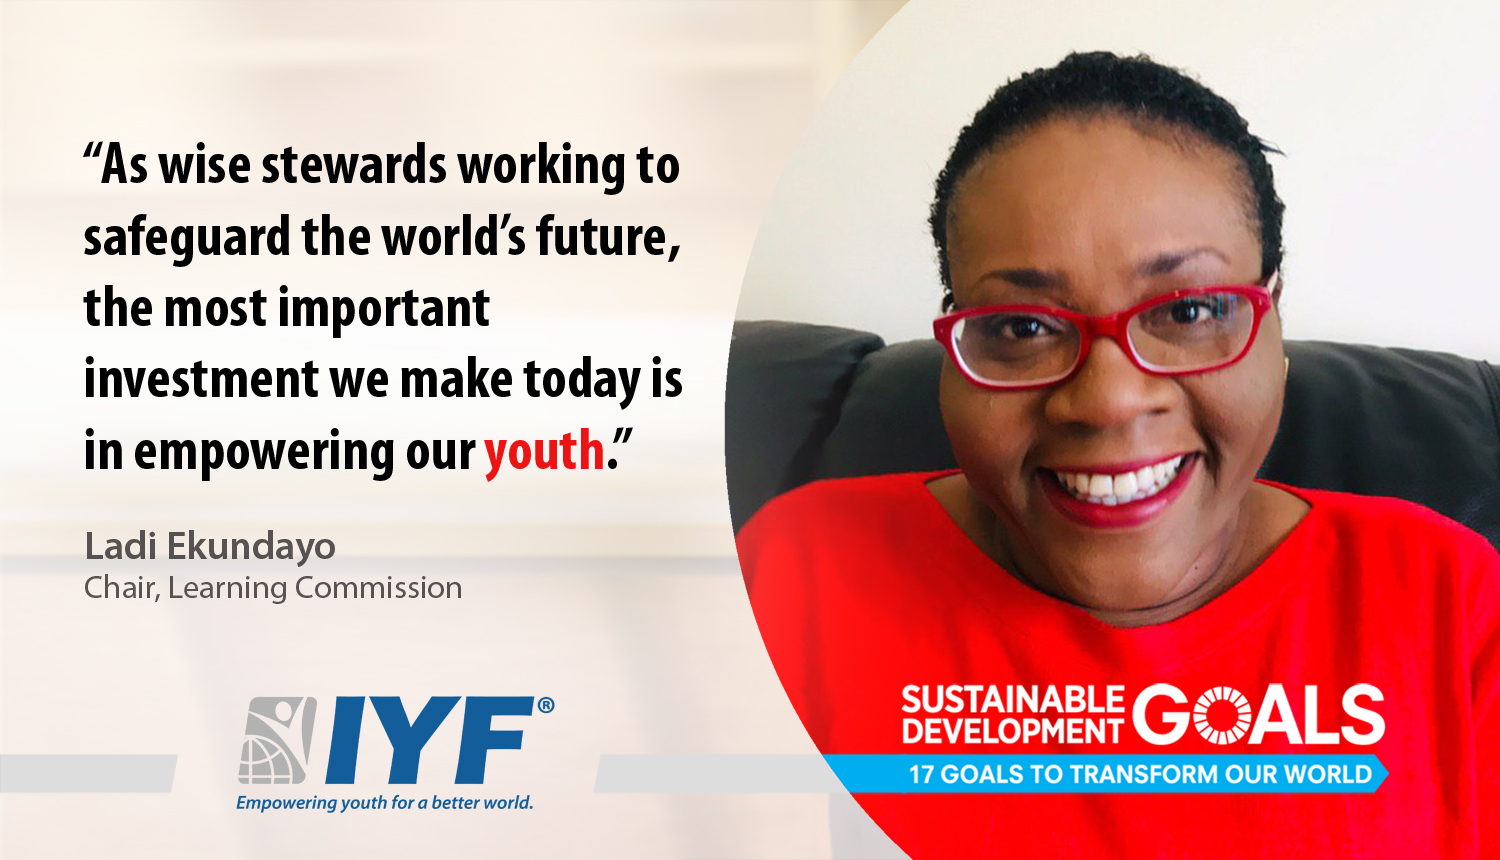 International Youth Federation Appoints Ladi Ekundayo as Chair of Learning Commission